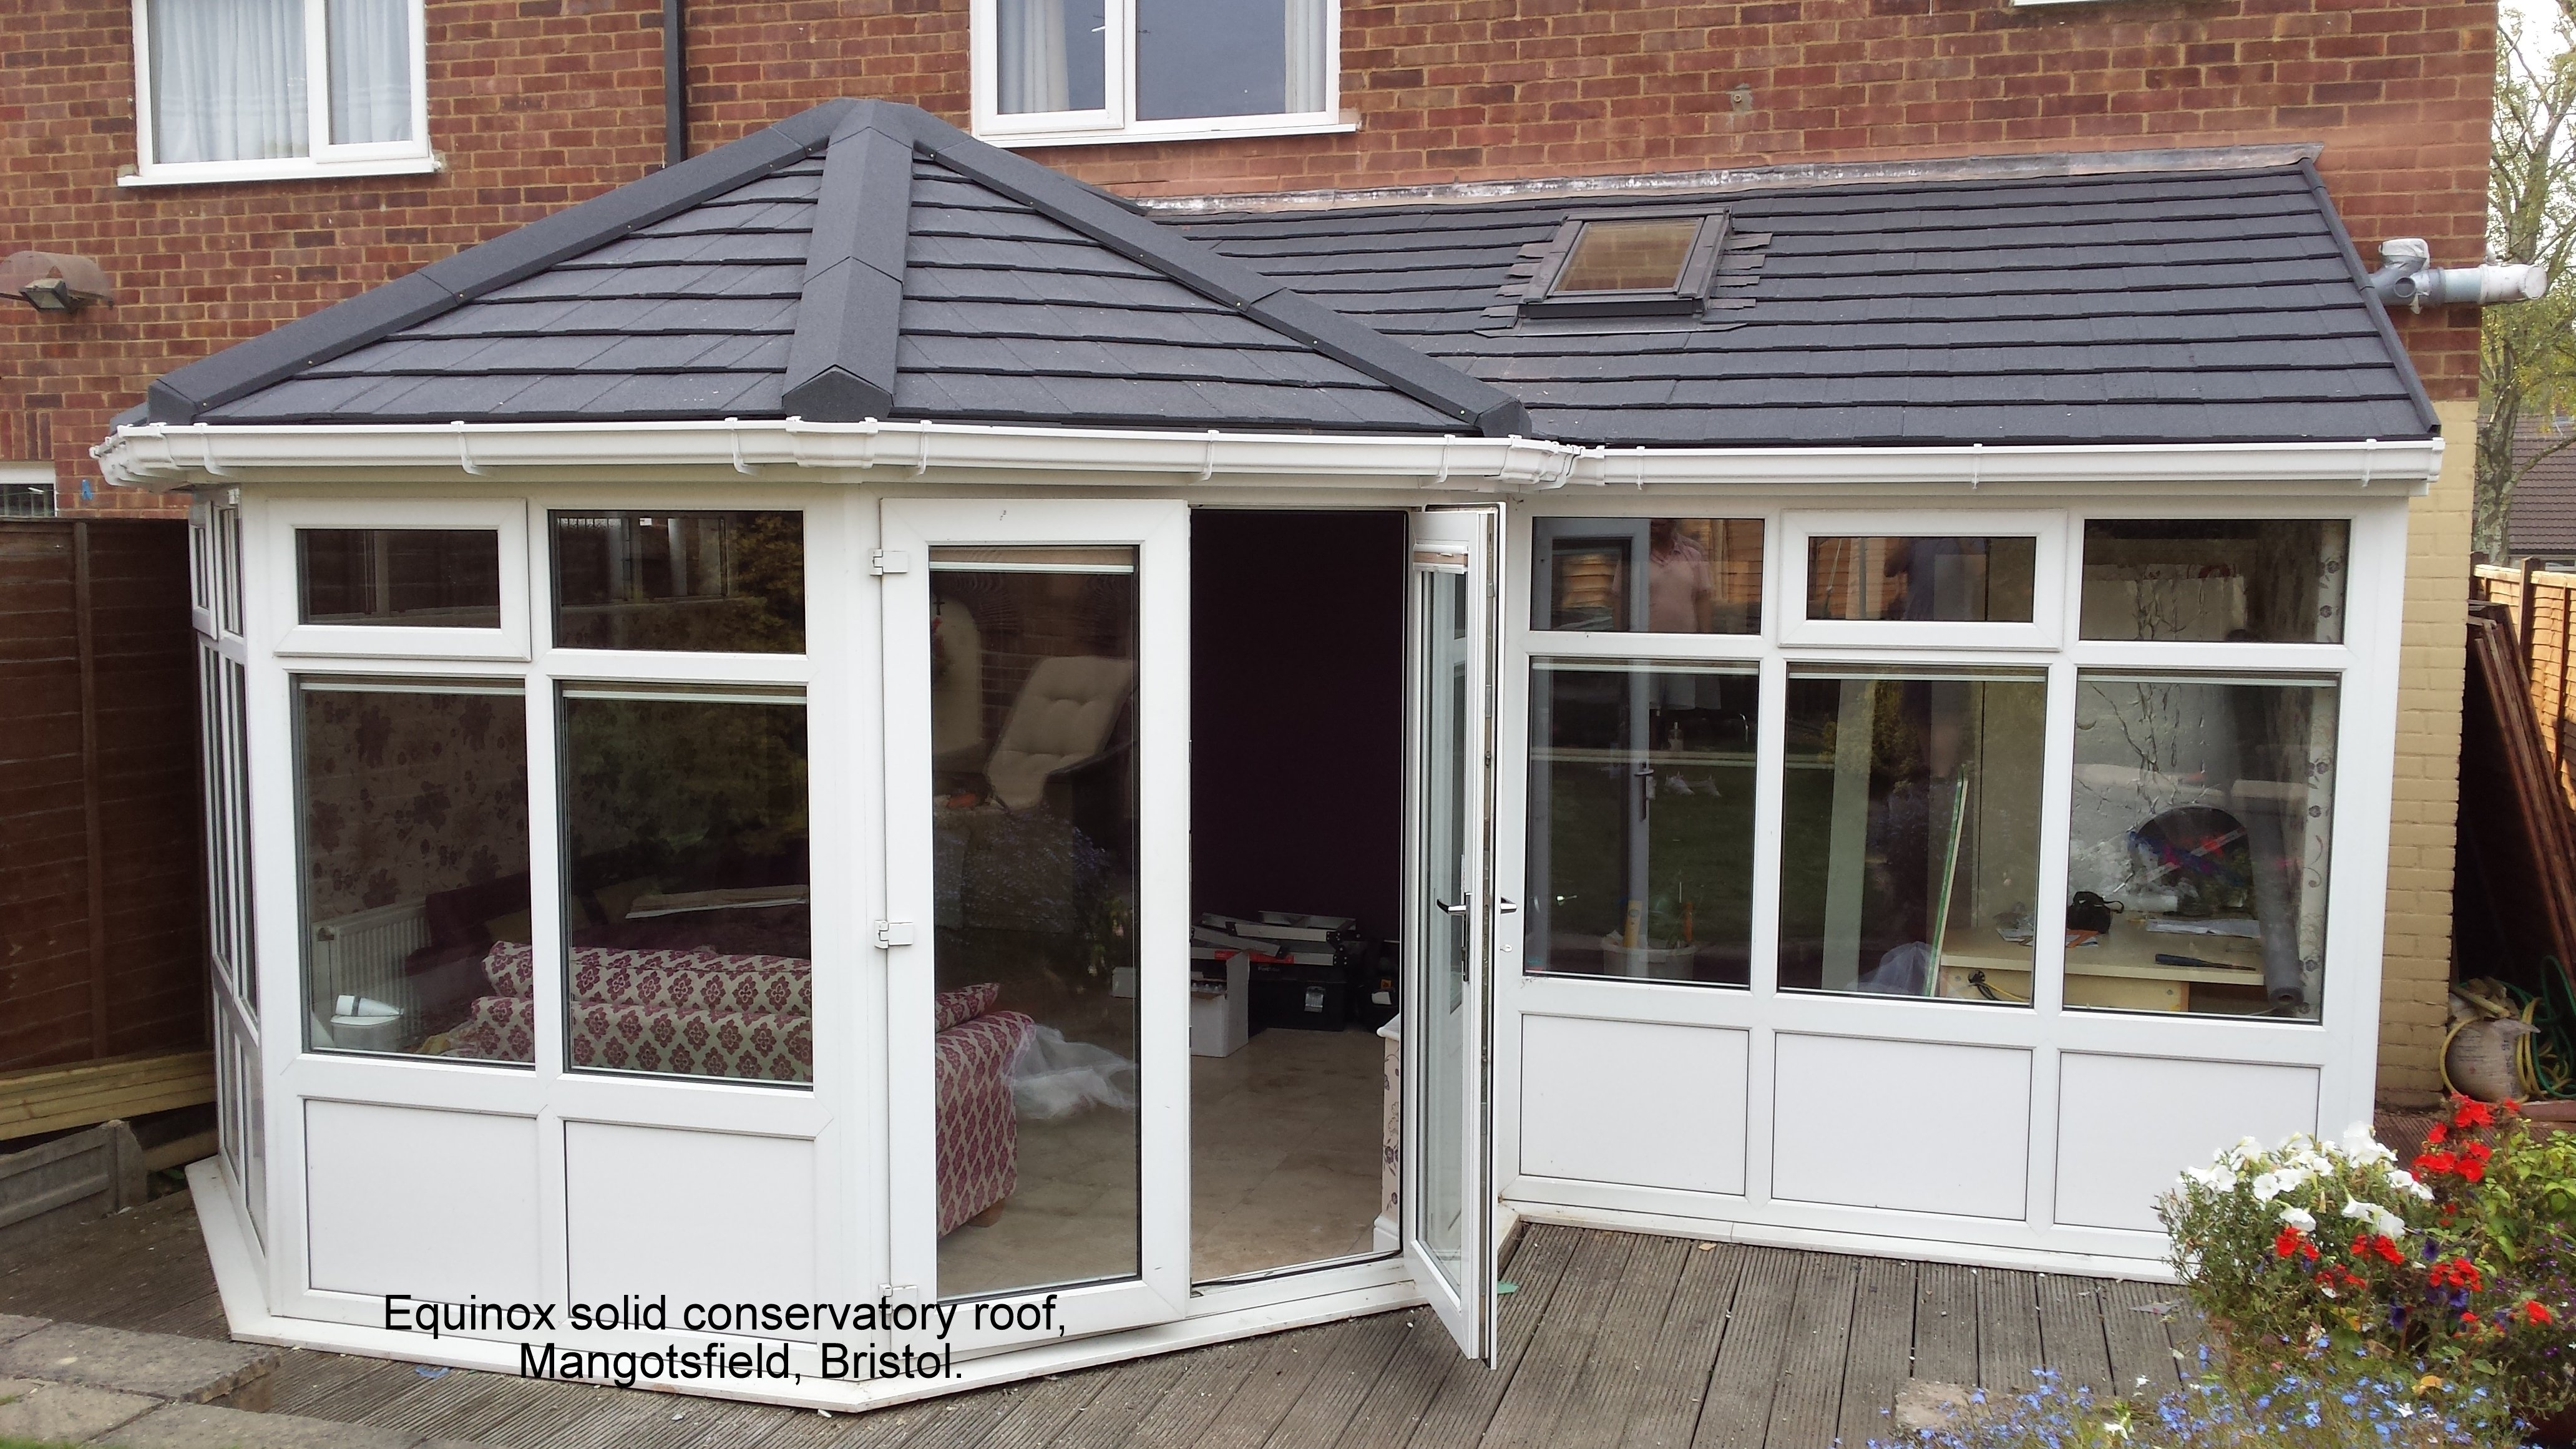 Conservatory with a glass roof